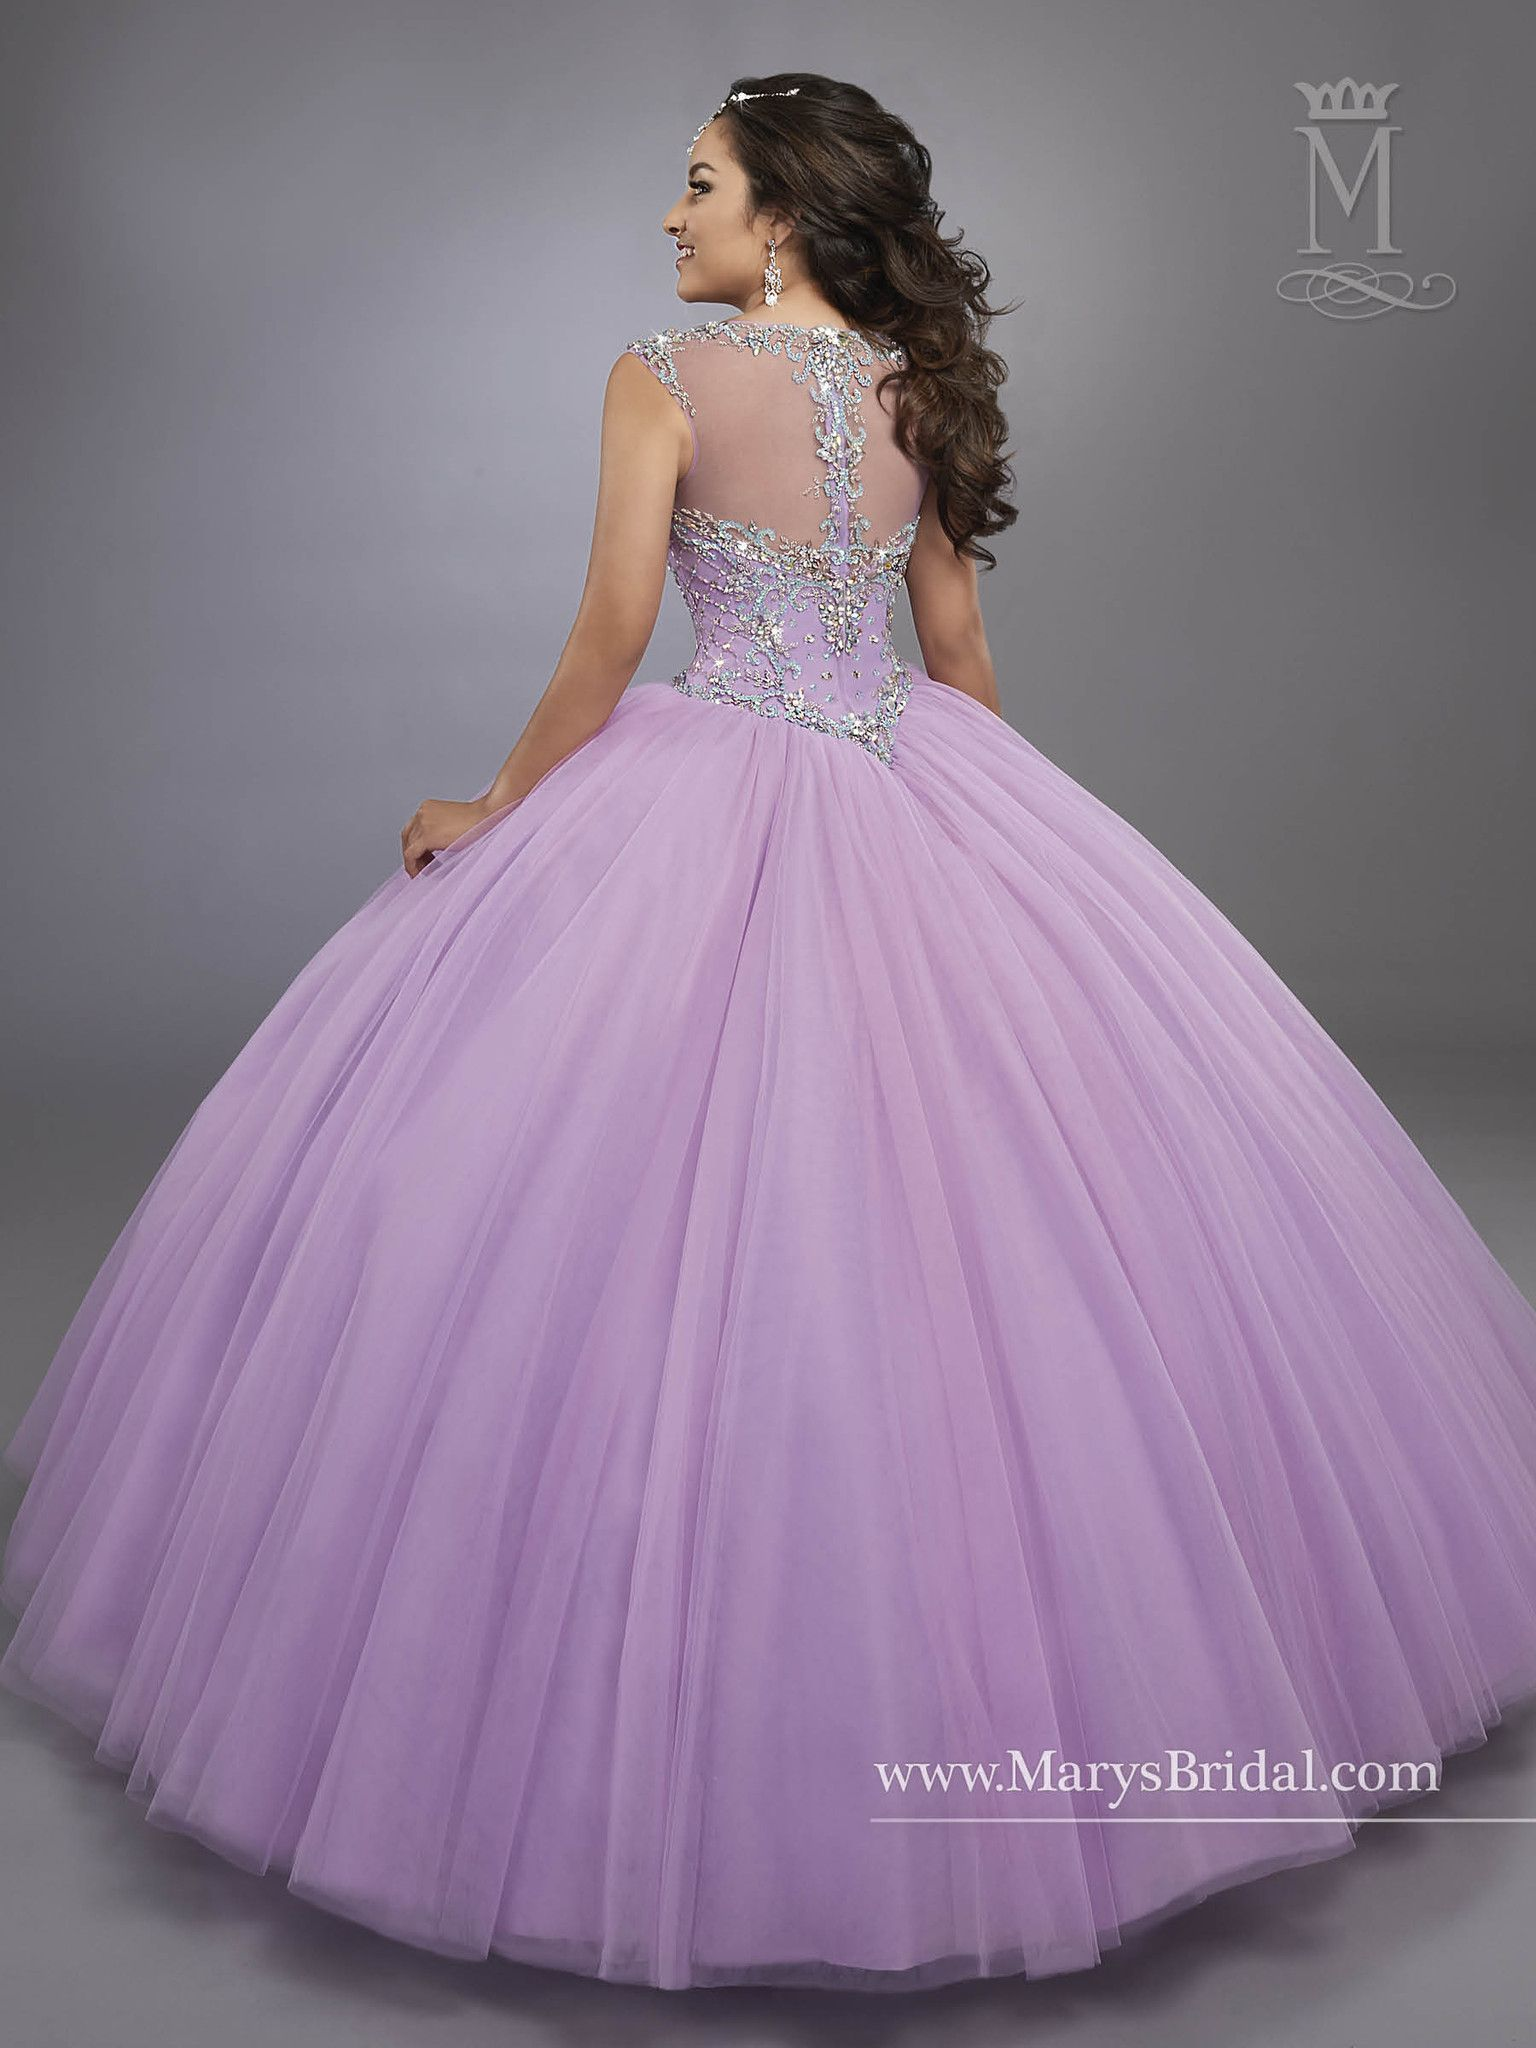 Mary\'s Bridal Beloving Collection Quinceanera Dress Style 4766 ...